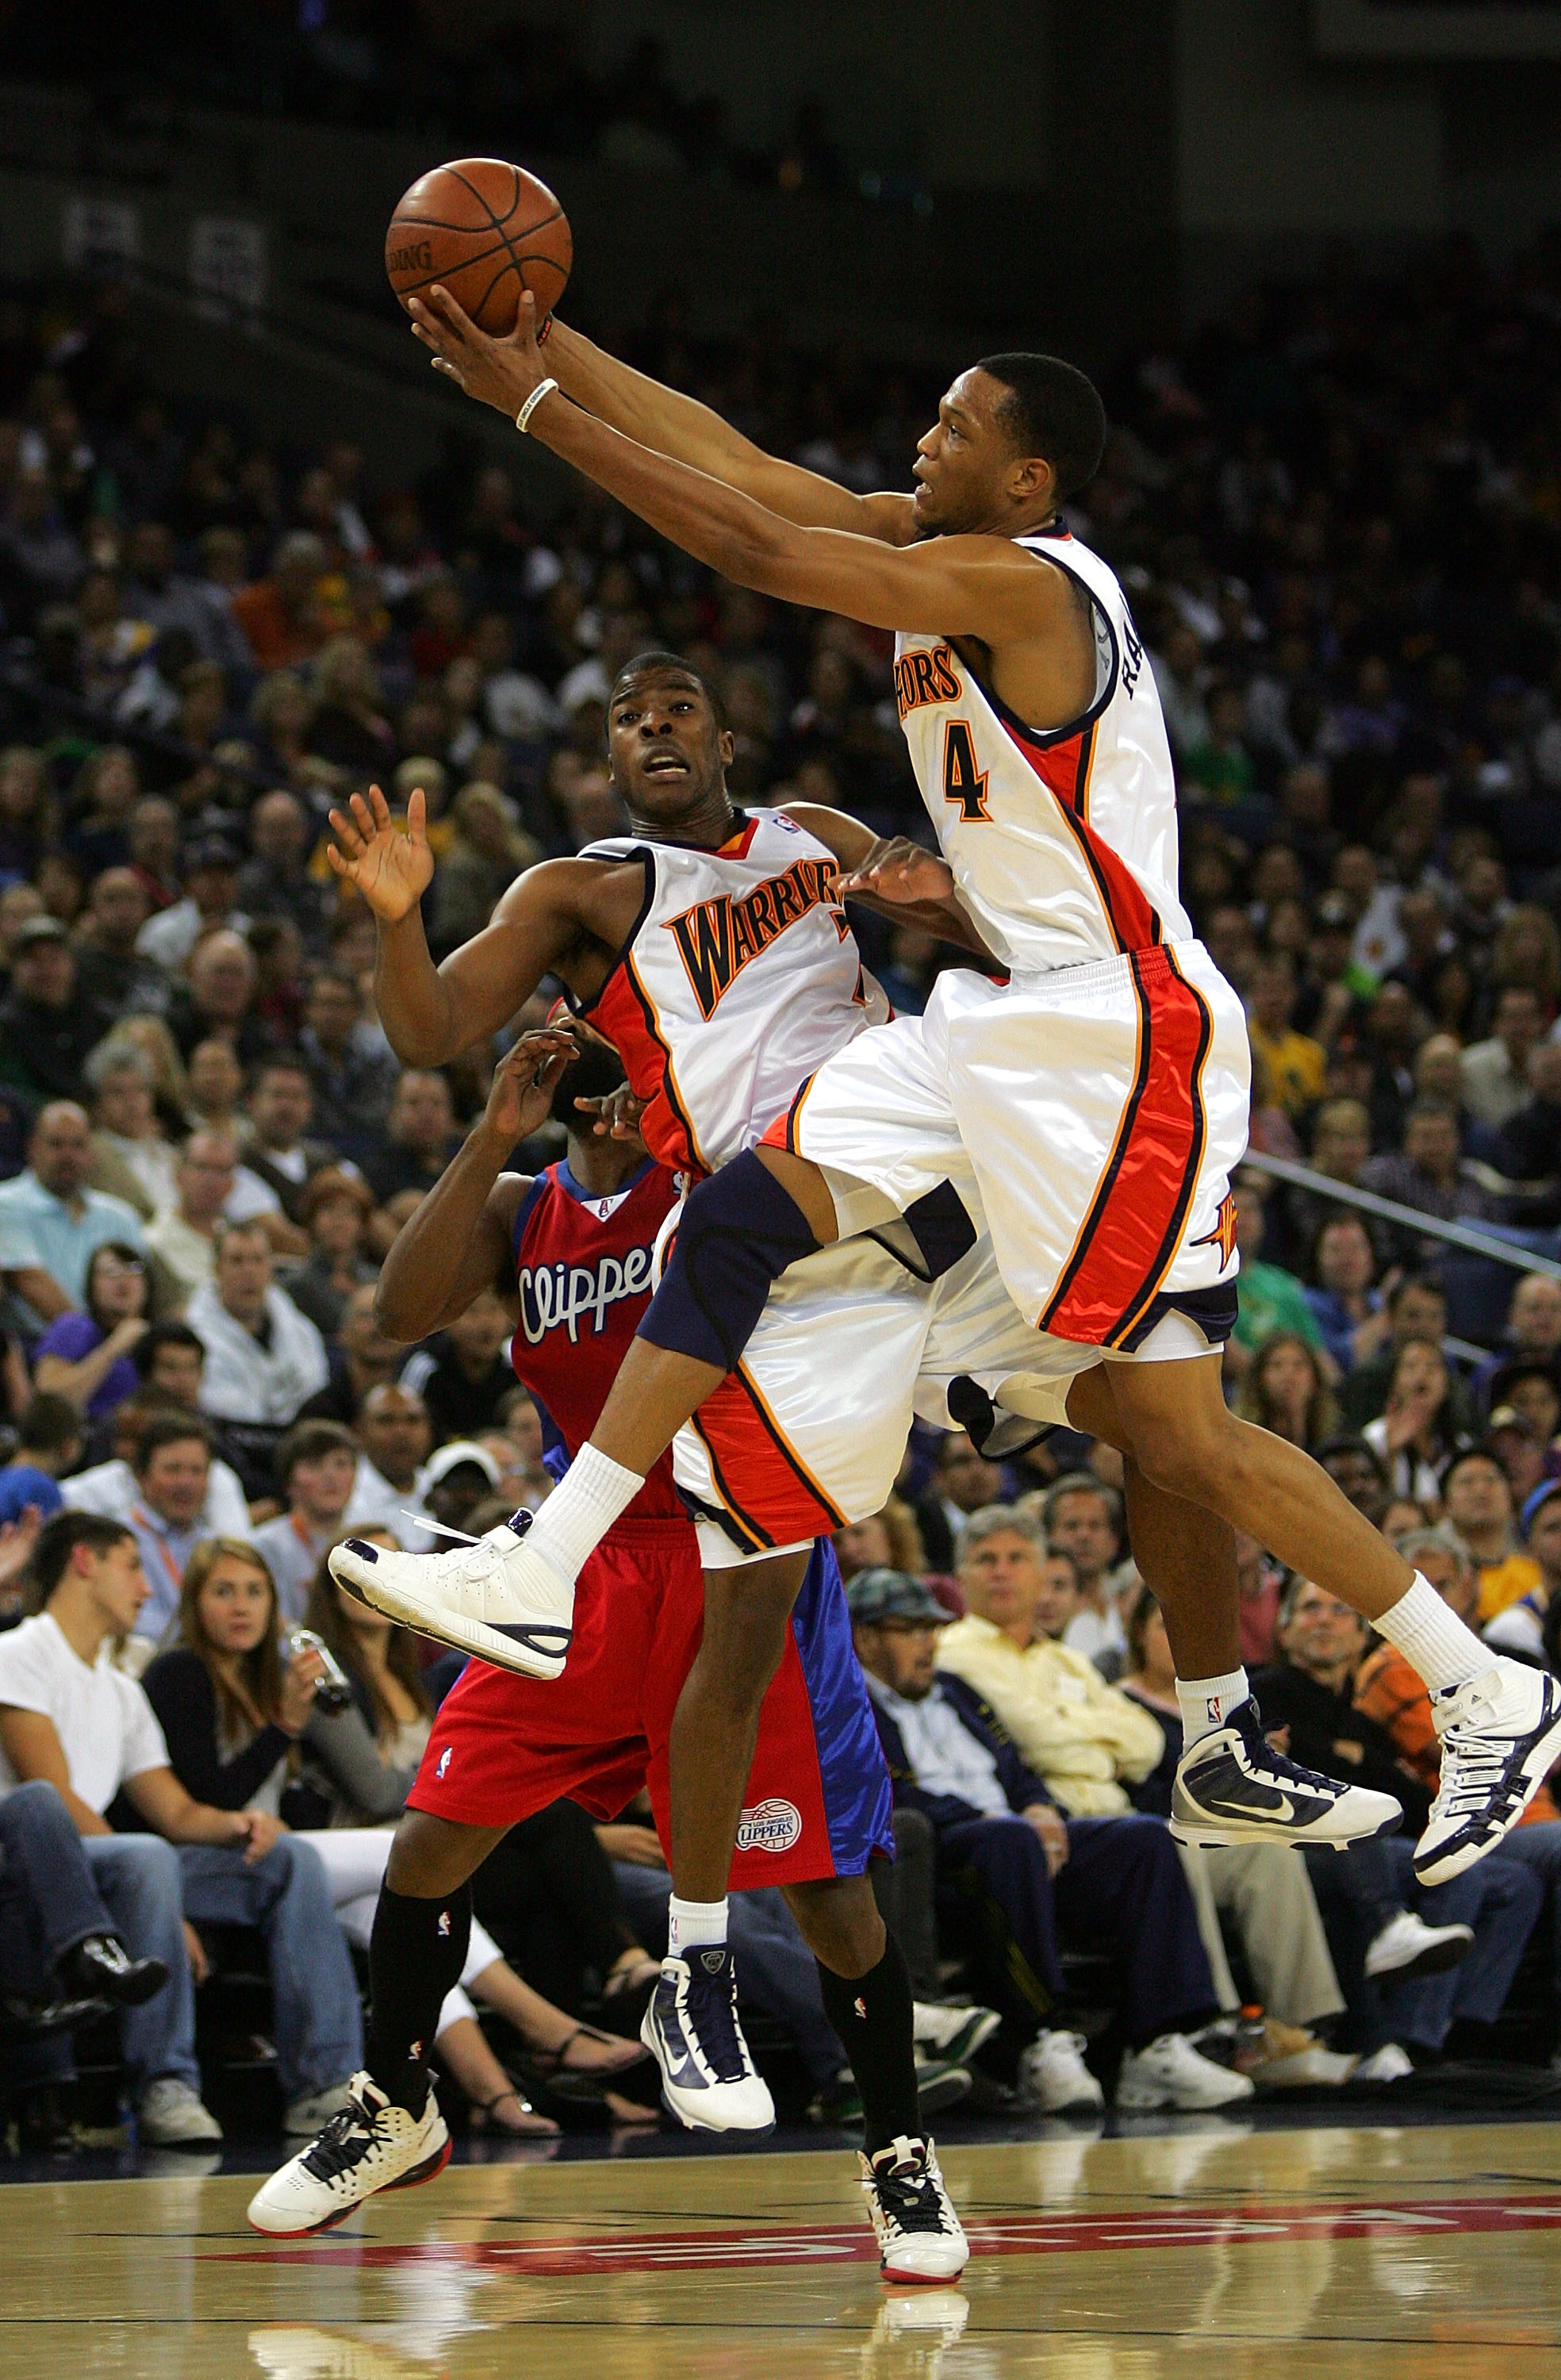 OAKLAND, CA - NOVEMBER 06:  Anthony Randolph #4 of the Golden State Warriors grabs a loose ball over Kelenna Azubuike #7 during their game against the Los Angeles Clippers at Oracle Arena on November 6, 2009 in Oakland, California. NOTE TO USER: User expr